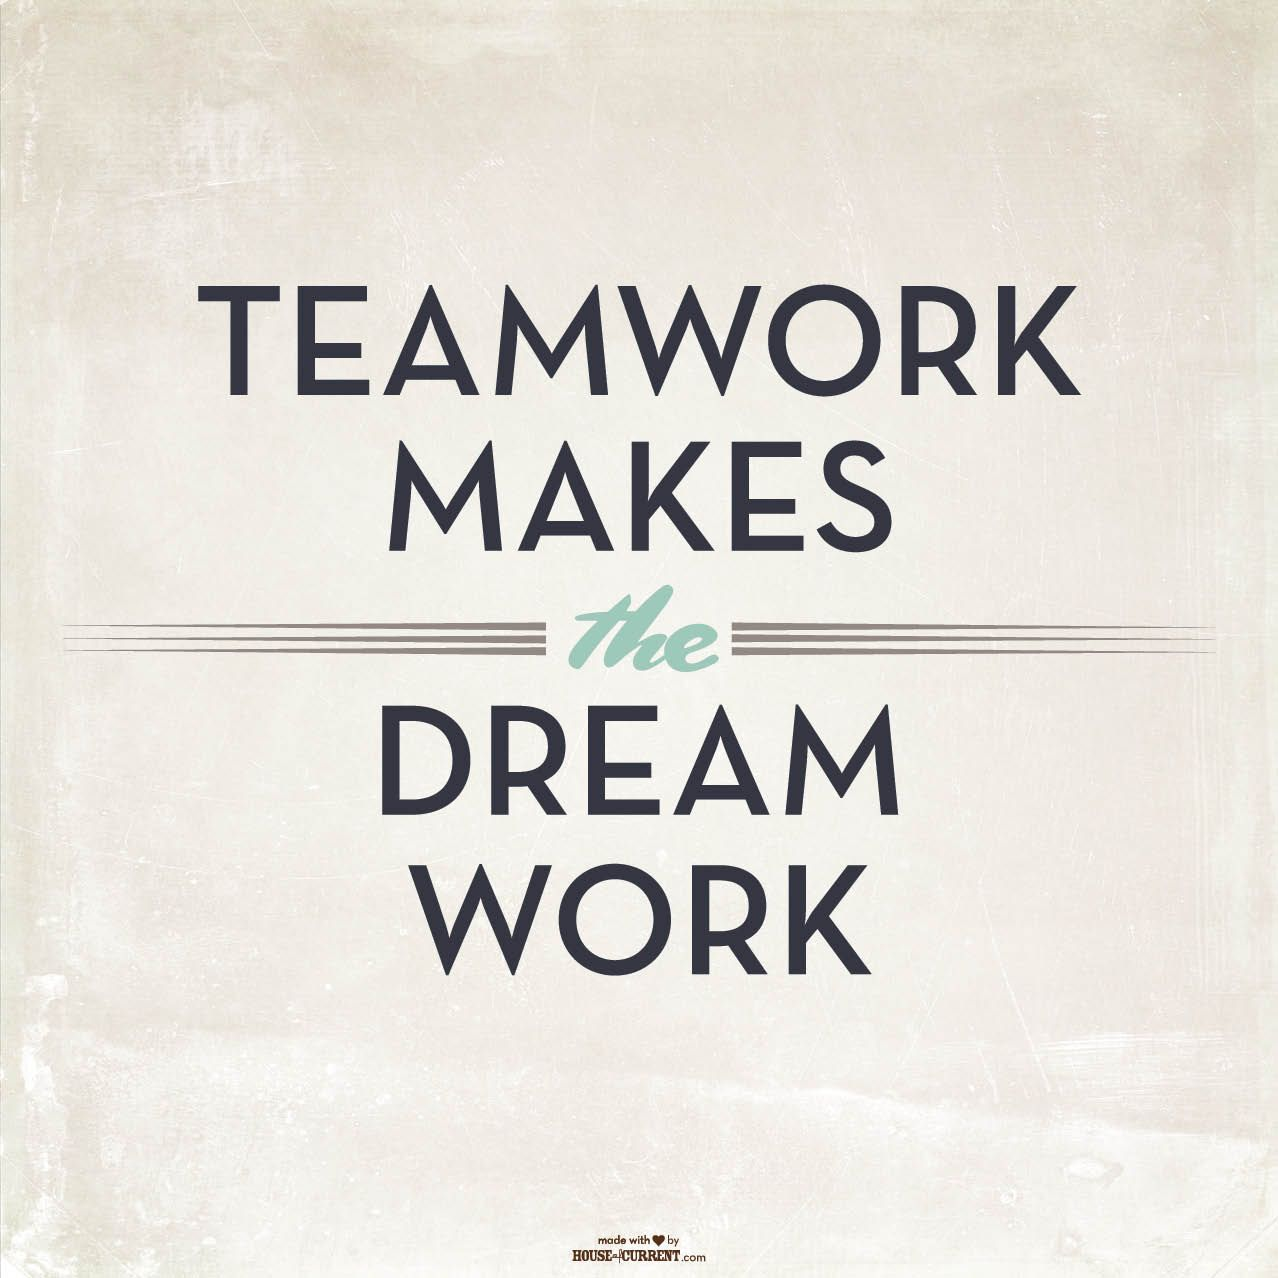 Motivational Quotes For Work: #housequotes Teamwork Makes The Dream Work